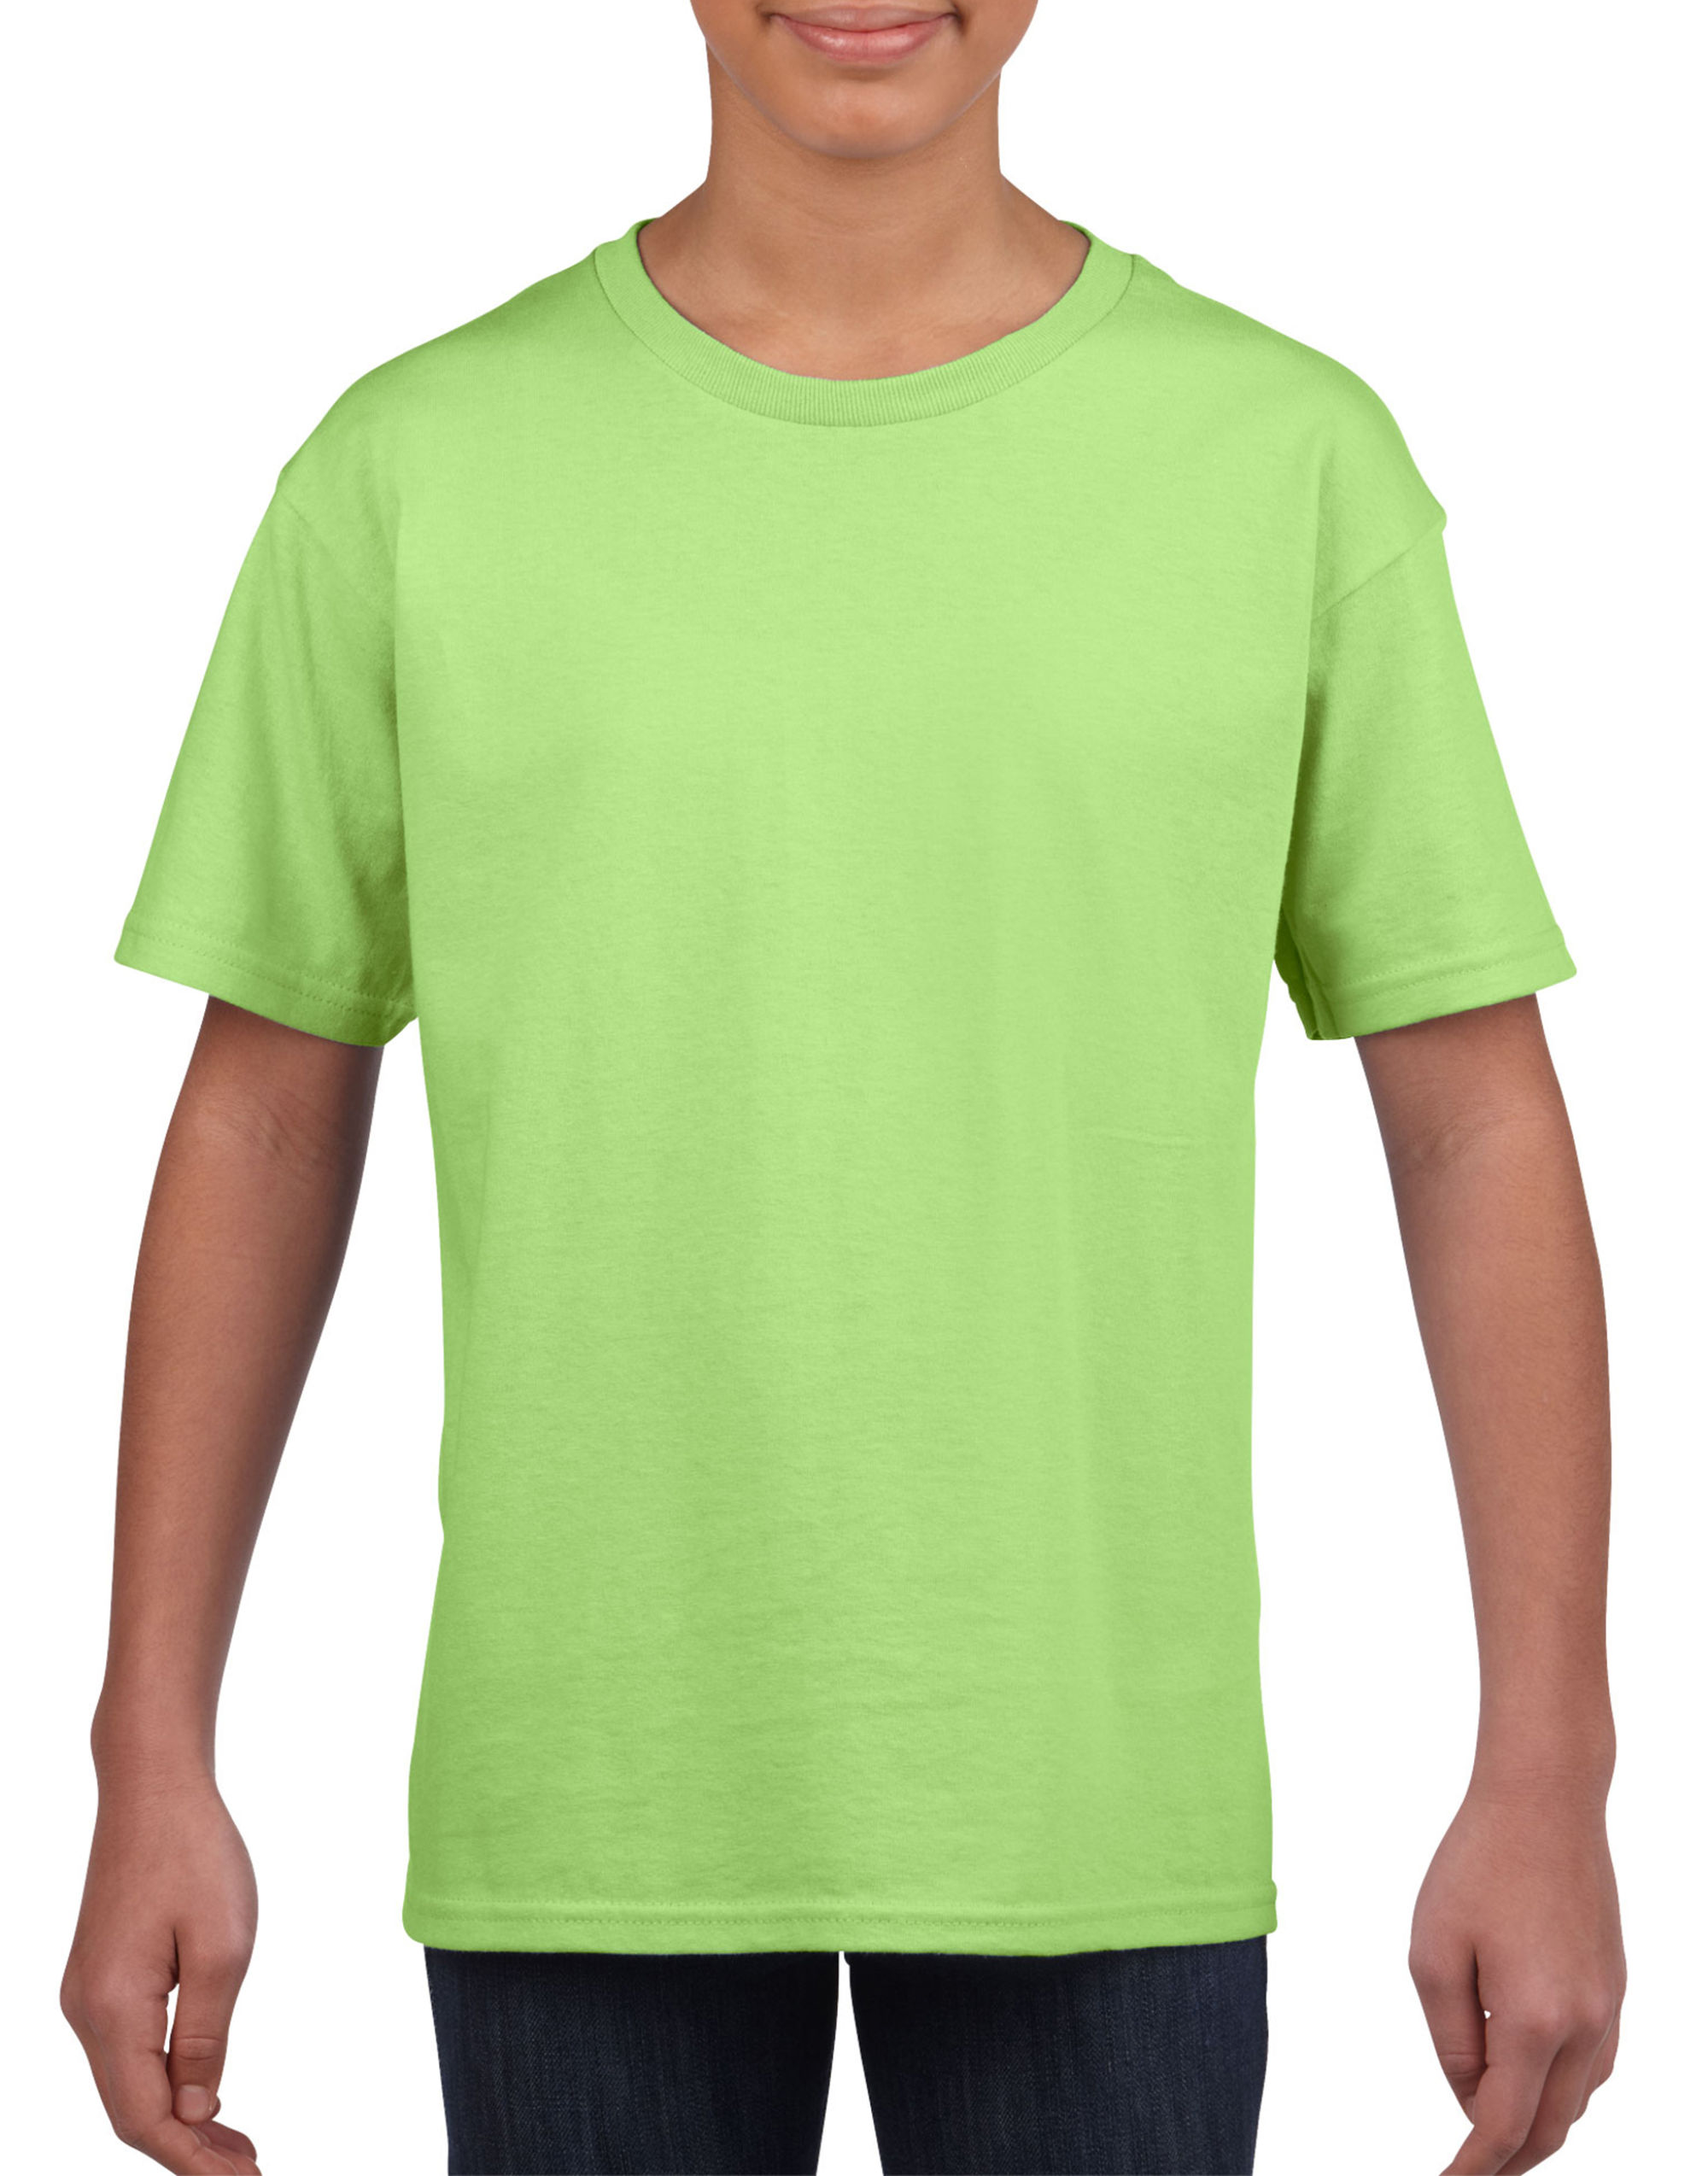 Kids Softstyle T-Shirt